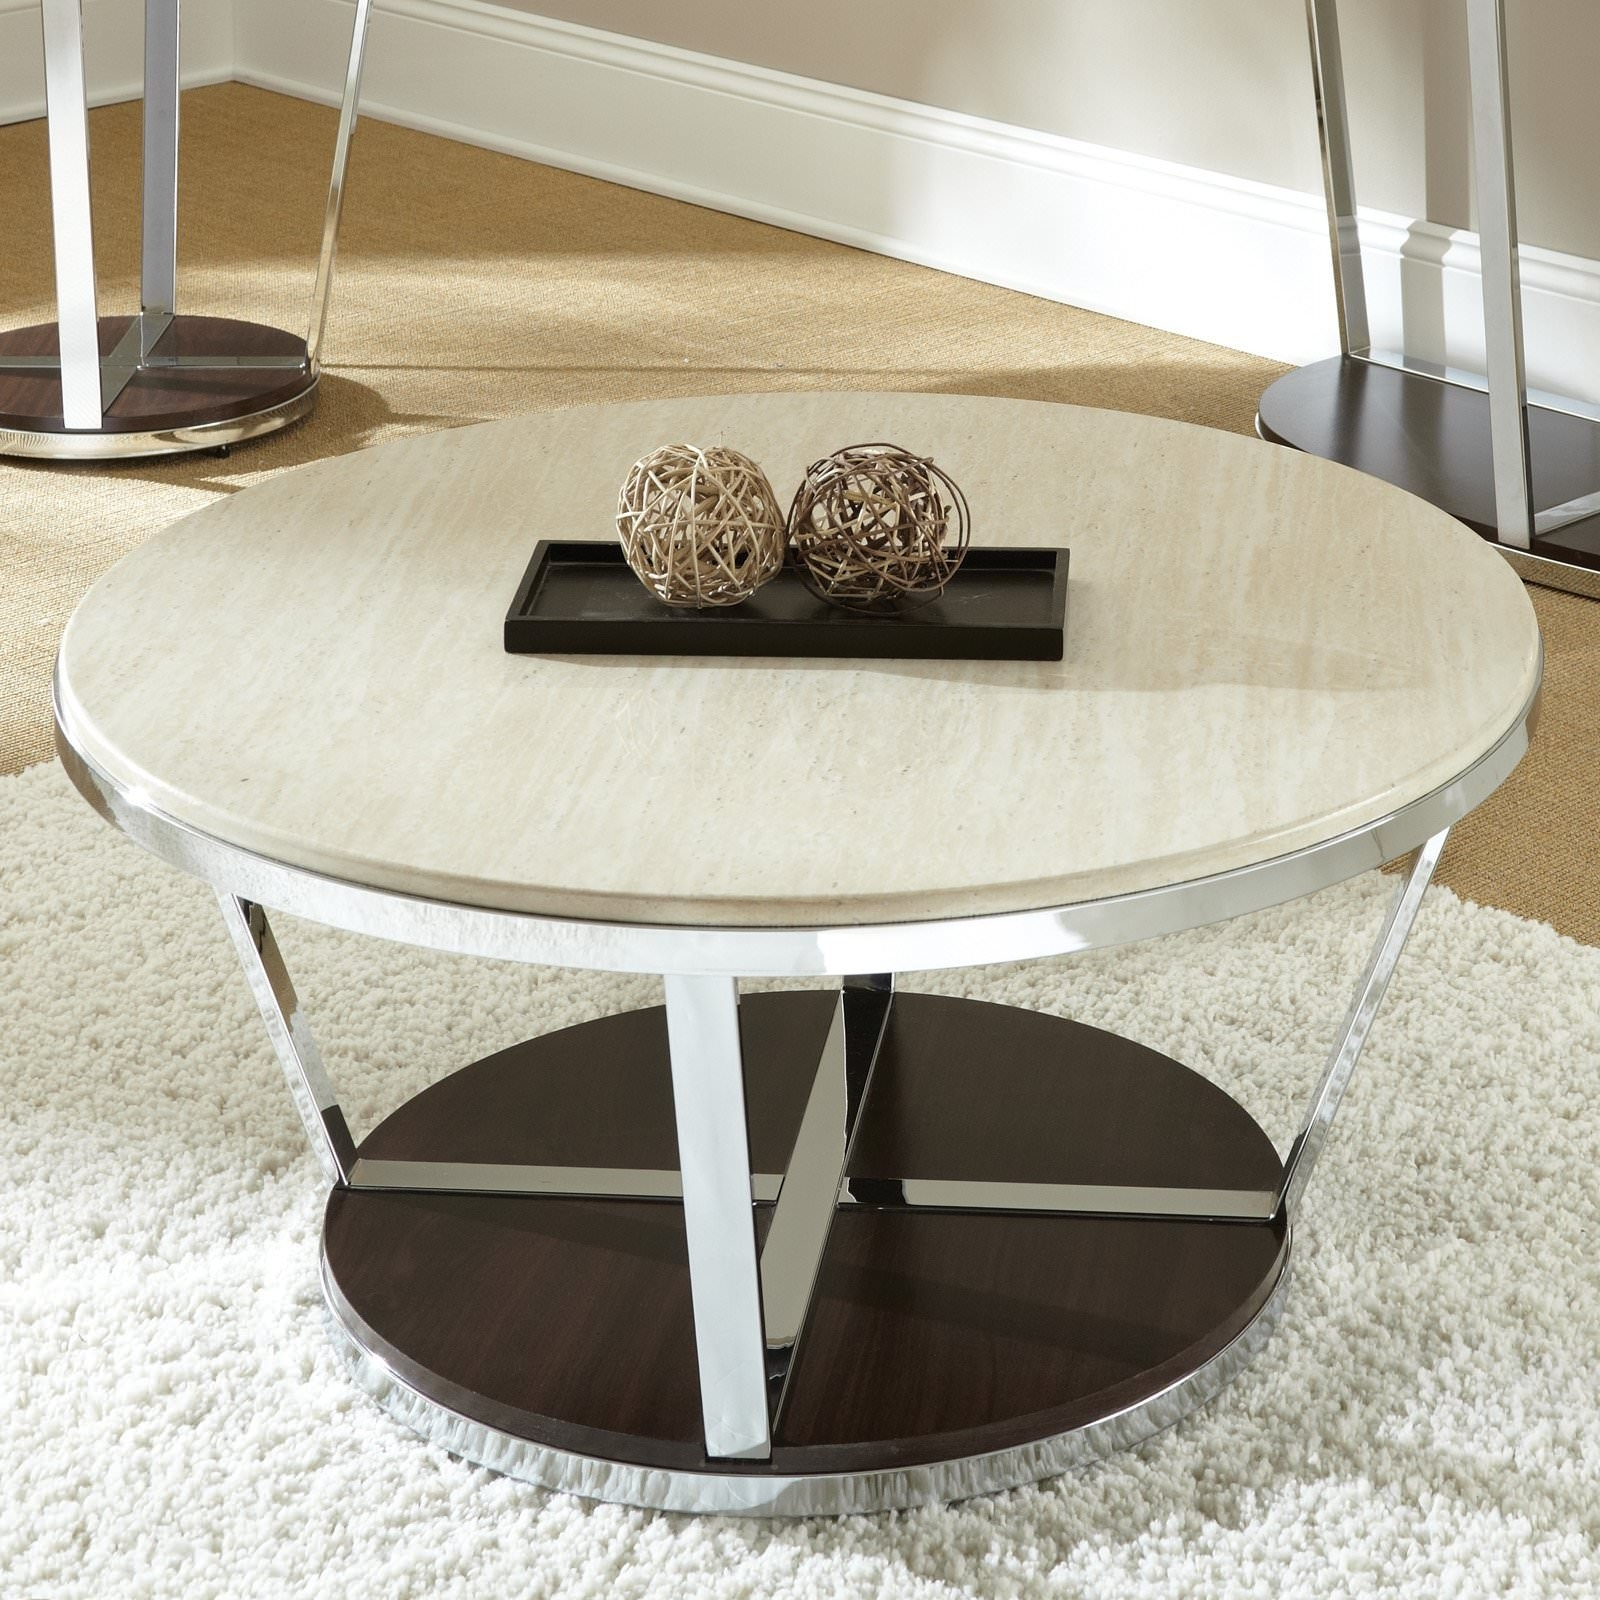 Widely Used Jackson Marble Side Tables For Round Faux Marble Coffee Table — Sushi Ichimura Decor : Stylish Faux (View 8 of 20)